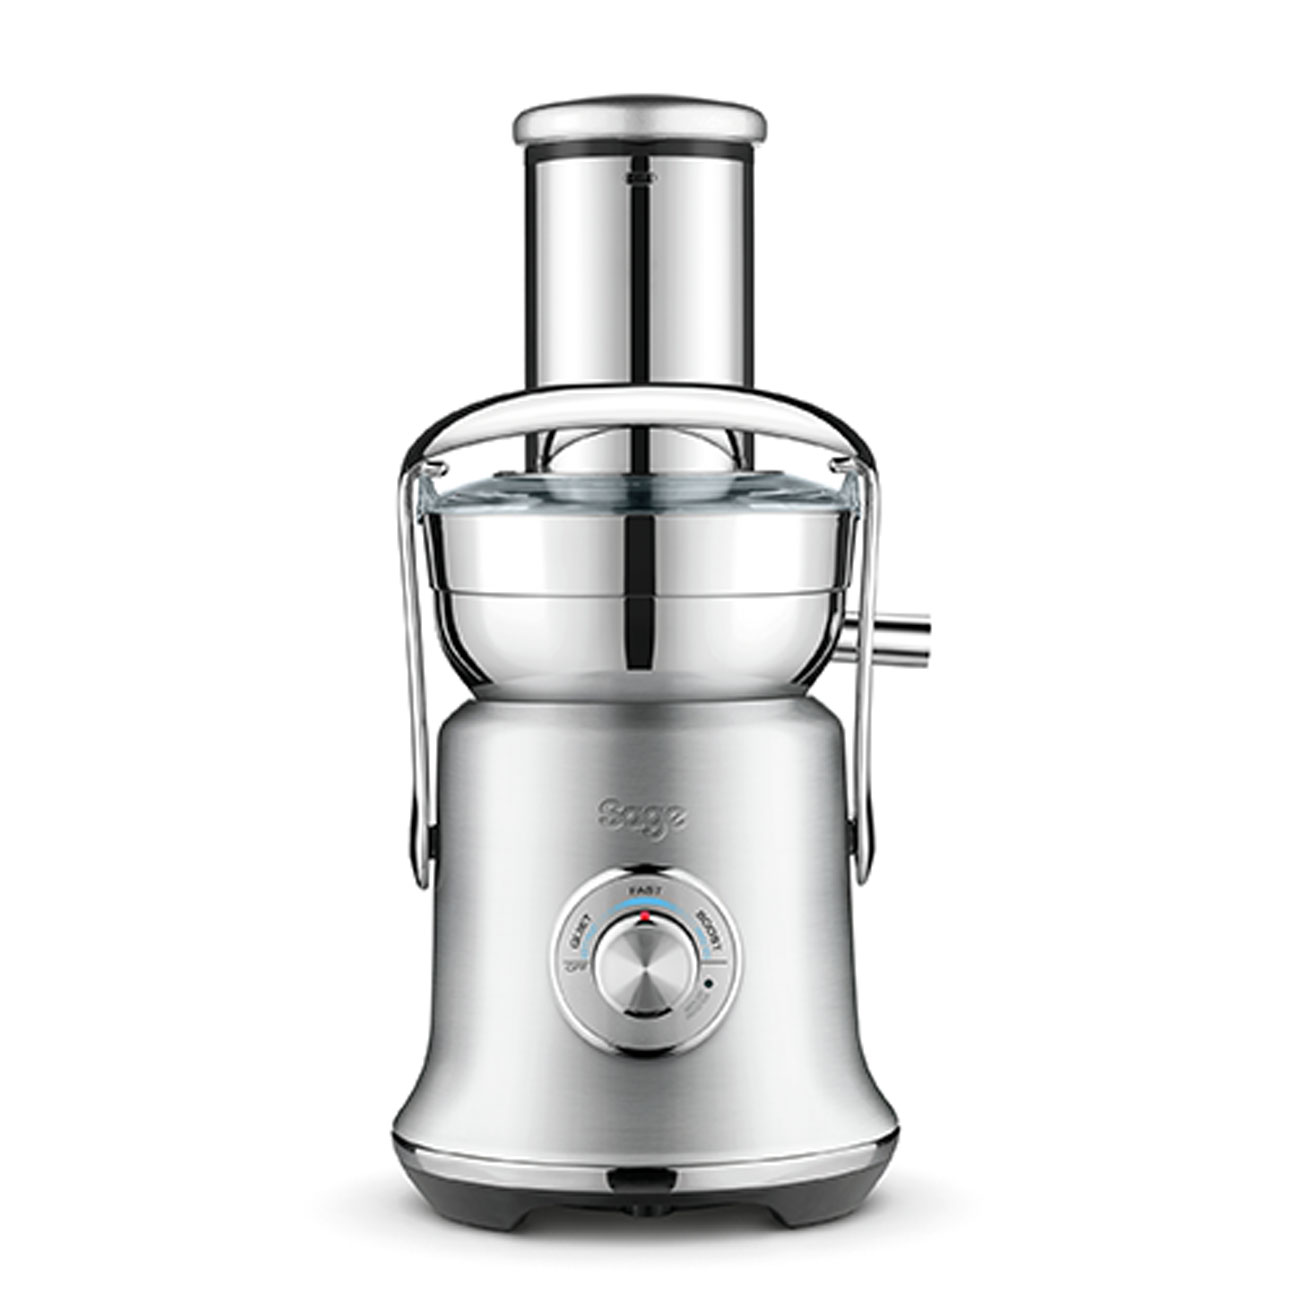 the Nutri Juicer® Cold XL